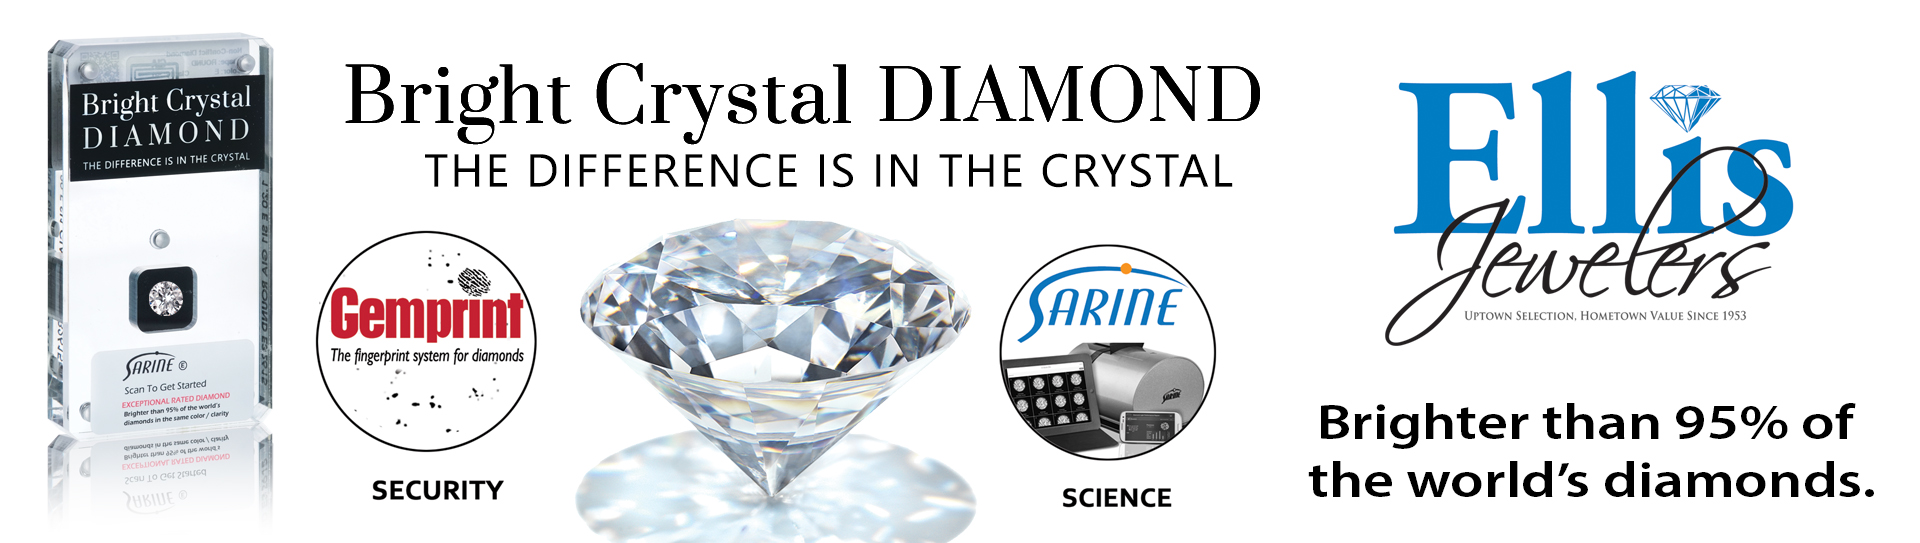 Bright Crystal Diamond